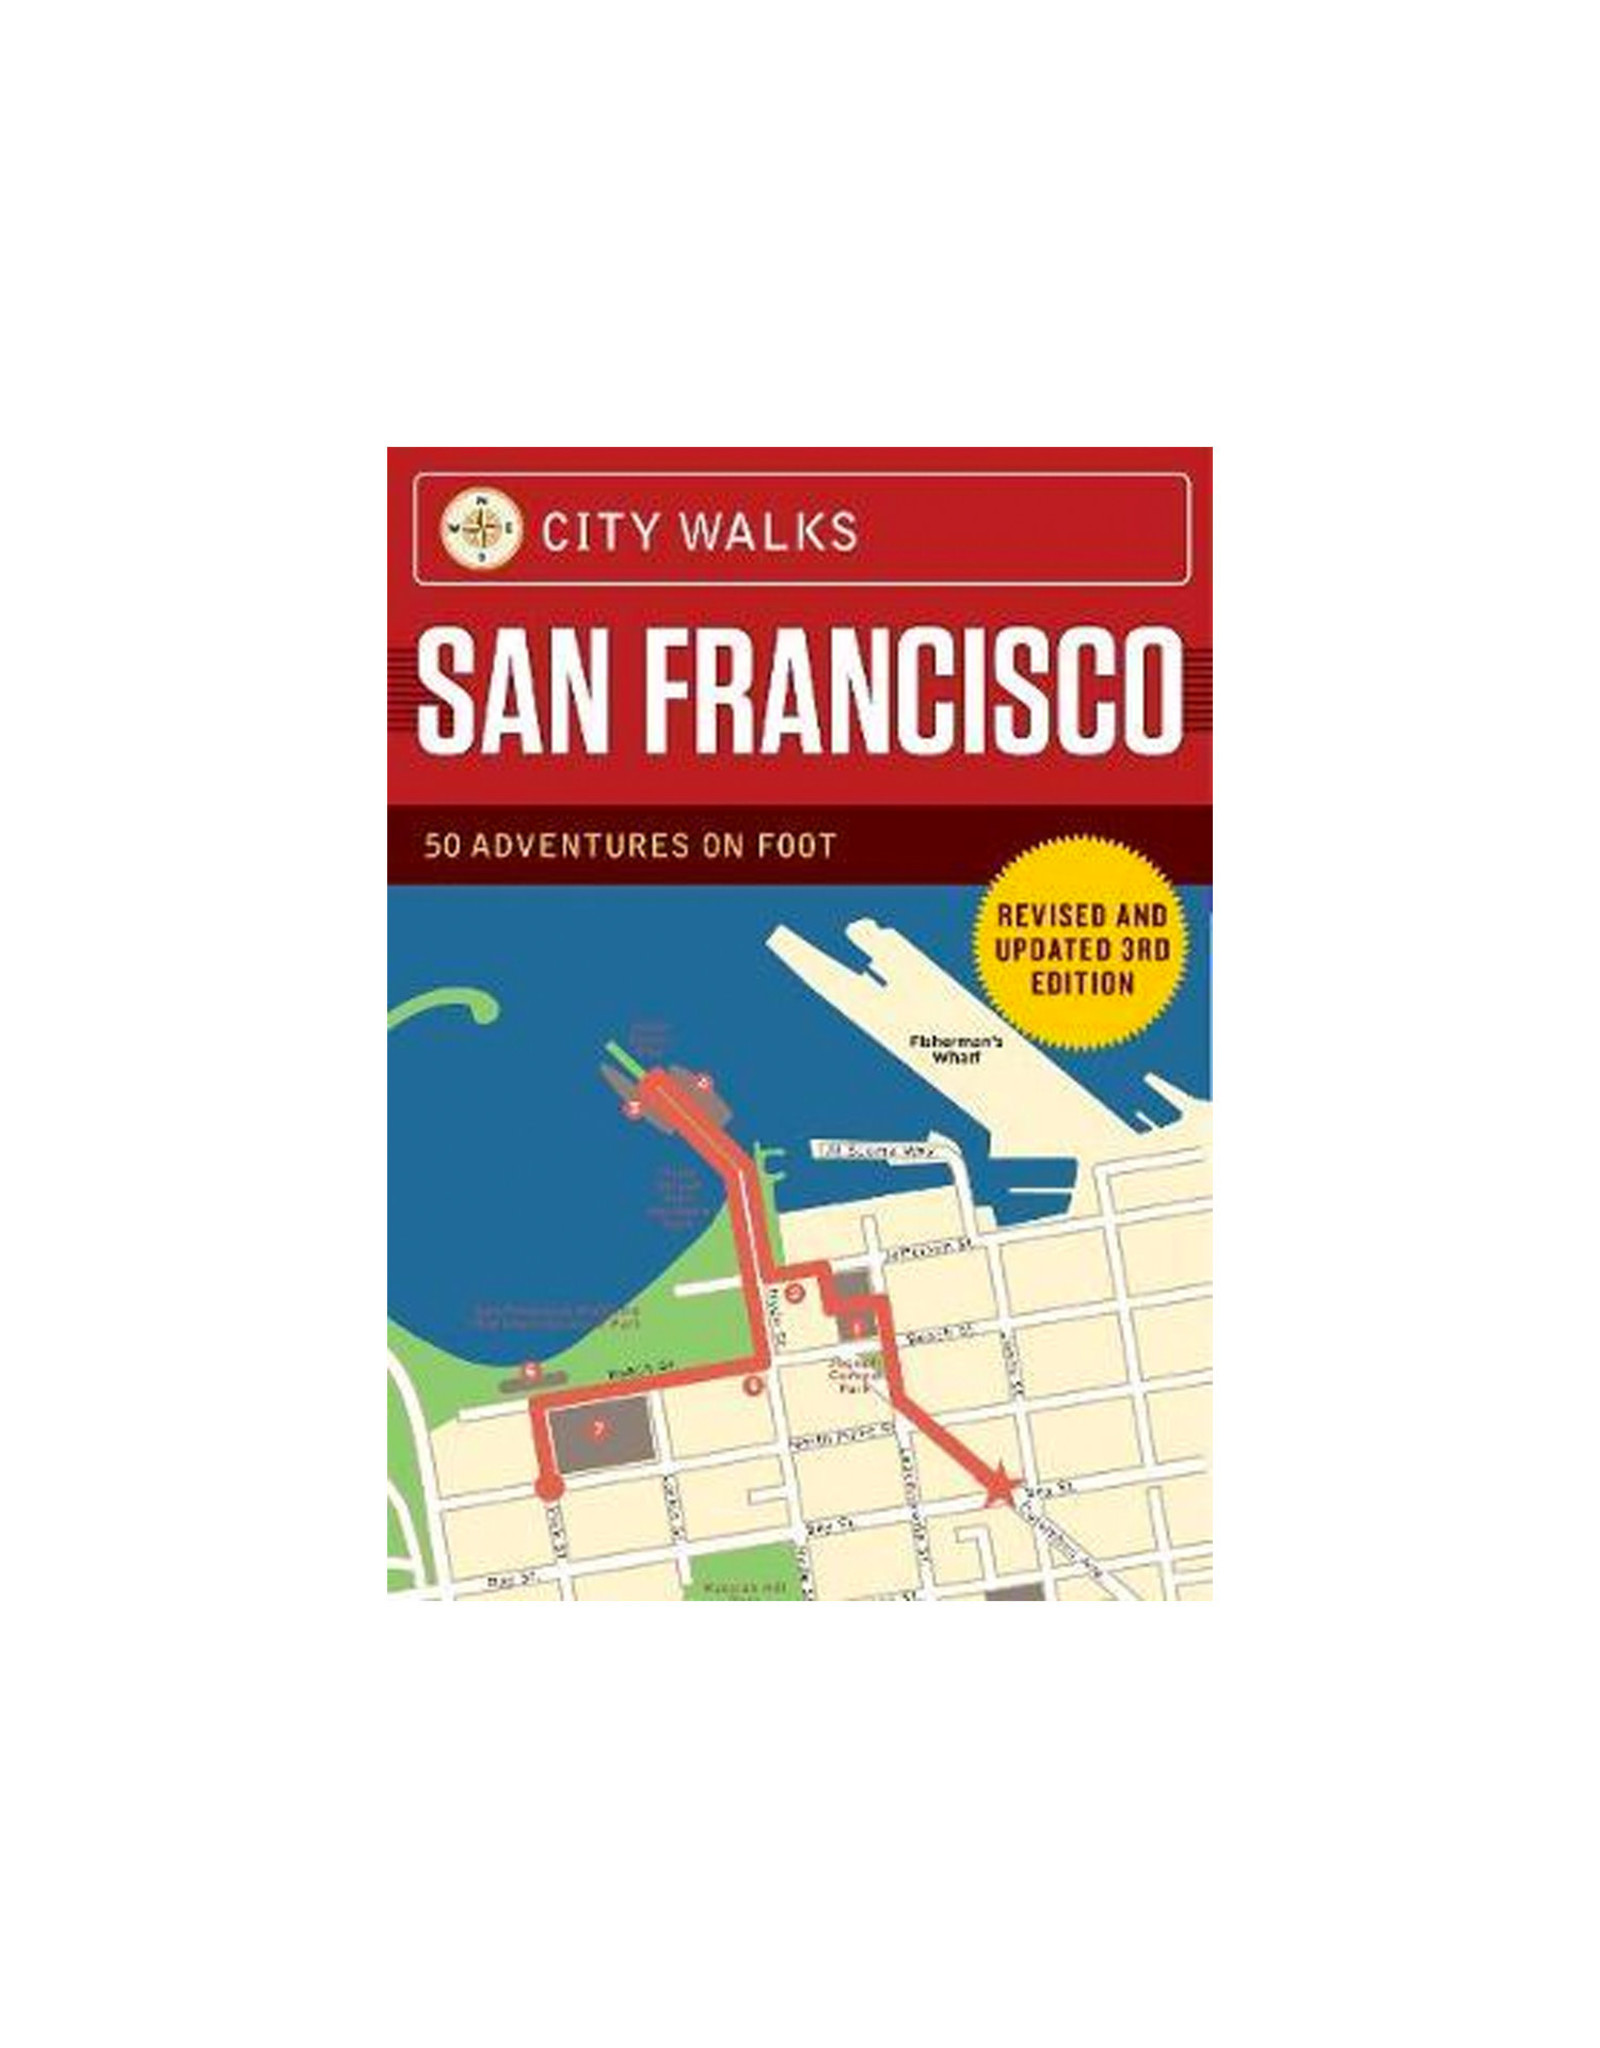 City Walks Deck: San Francisco (Revised): 50 Adventures on Foot Revised and Updated 3rd Edition